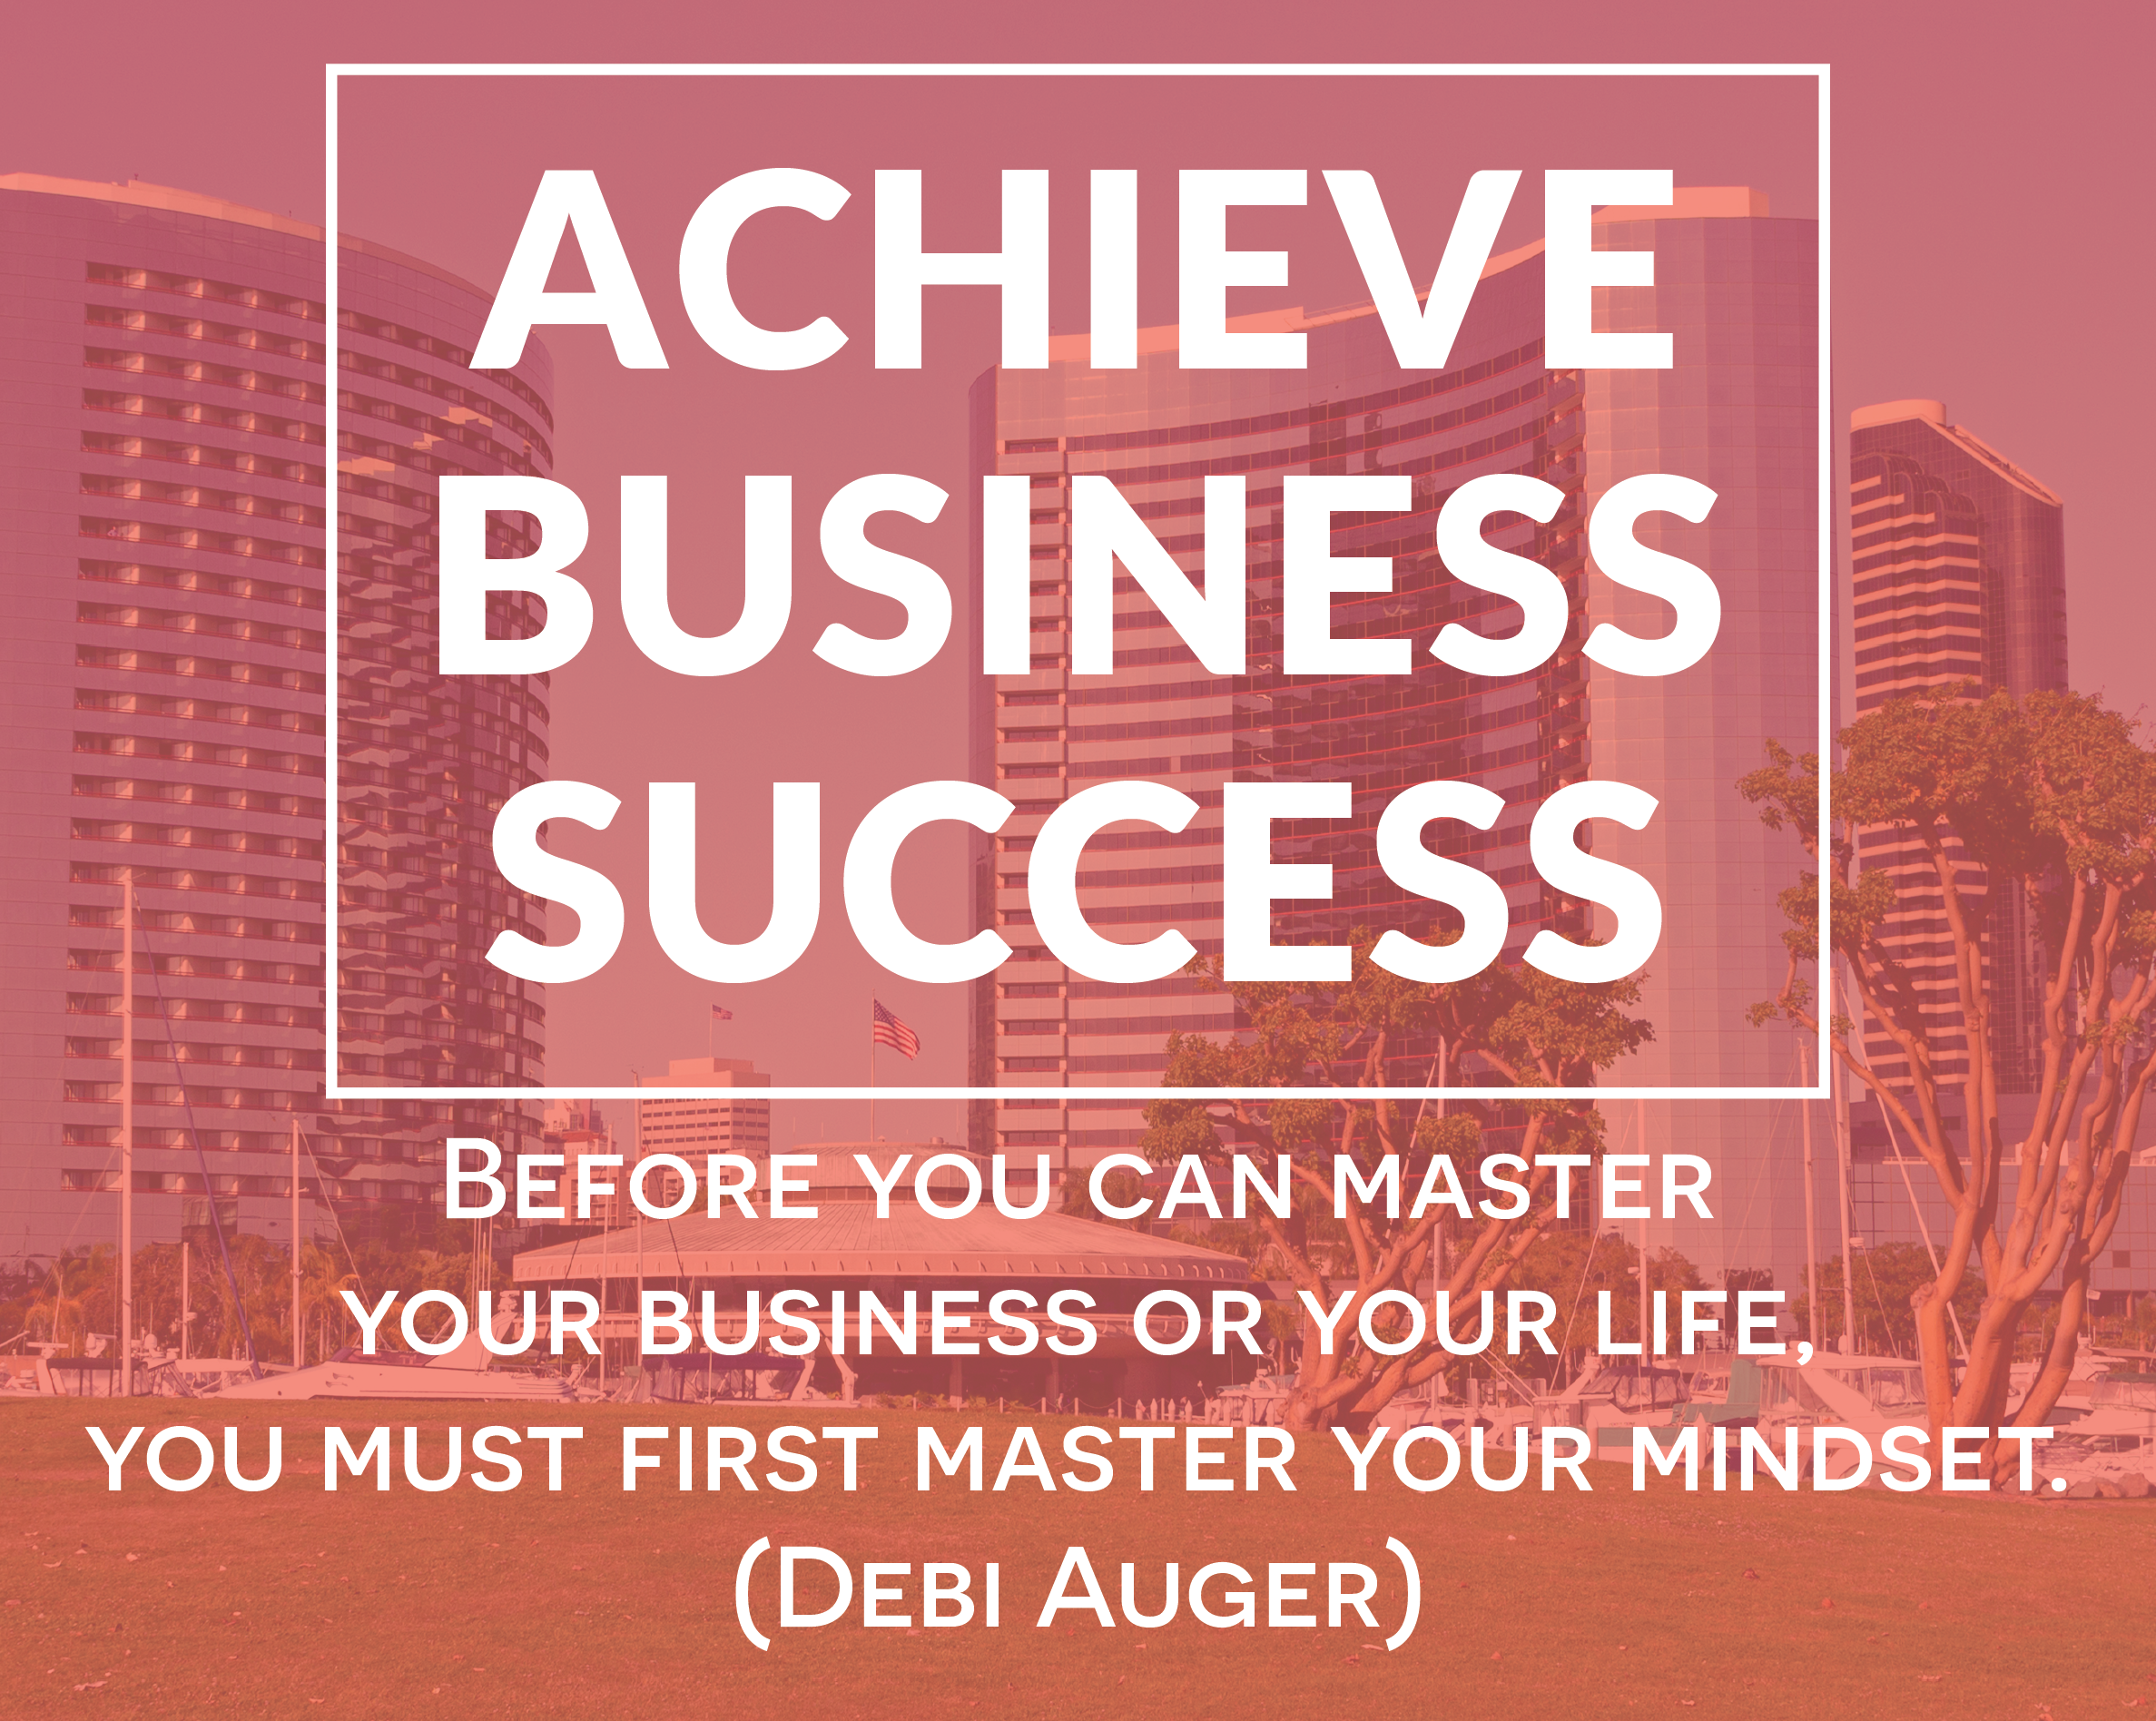 ACHIEVE BUSINESS SUCCESS